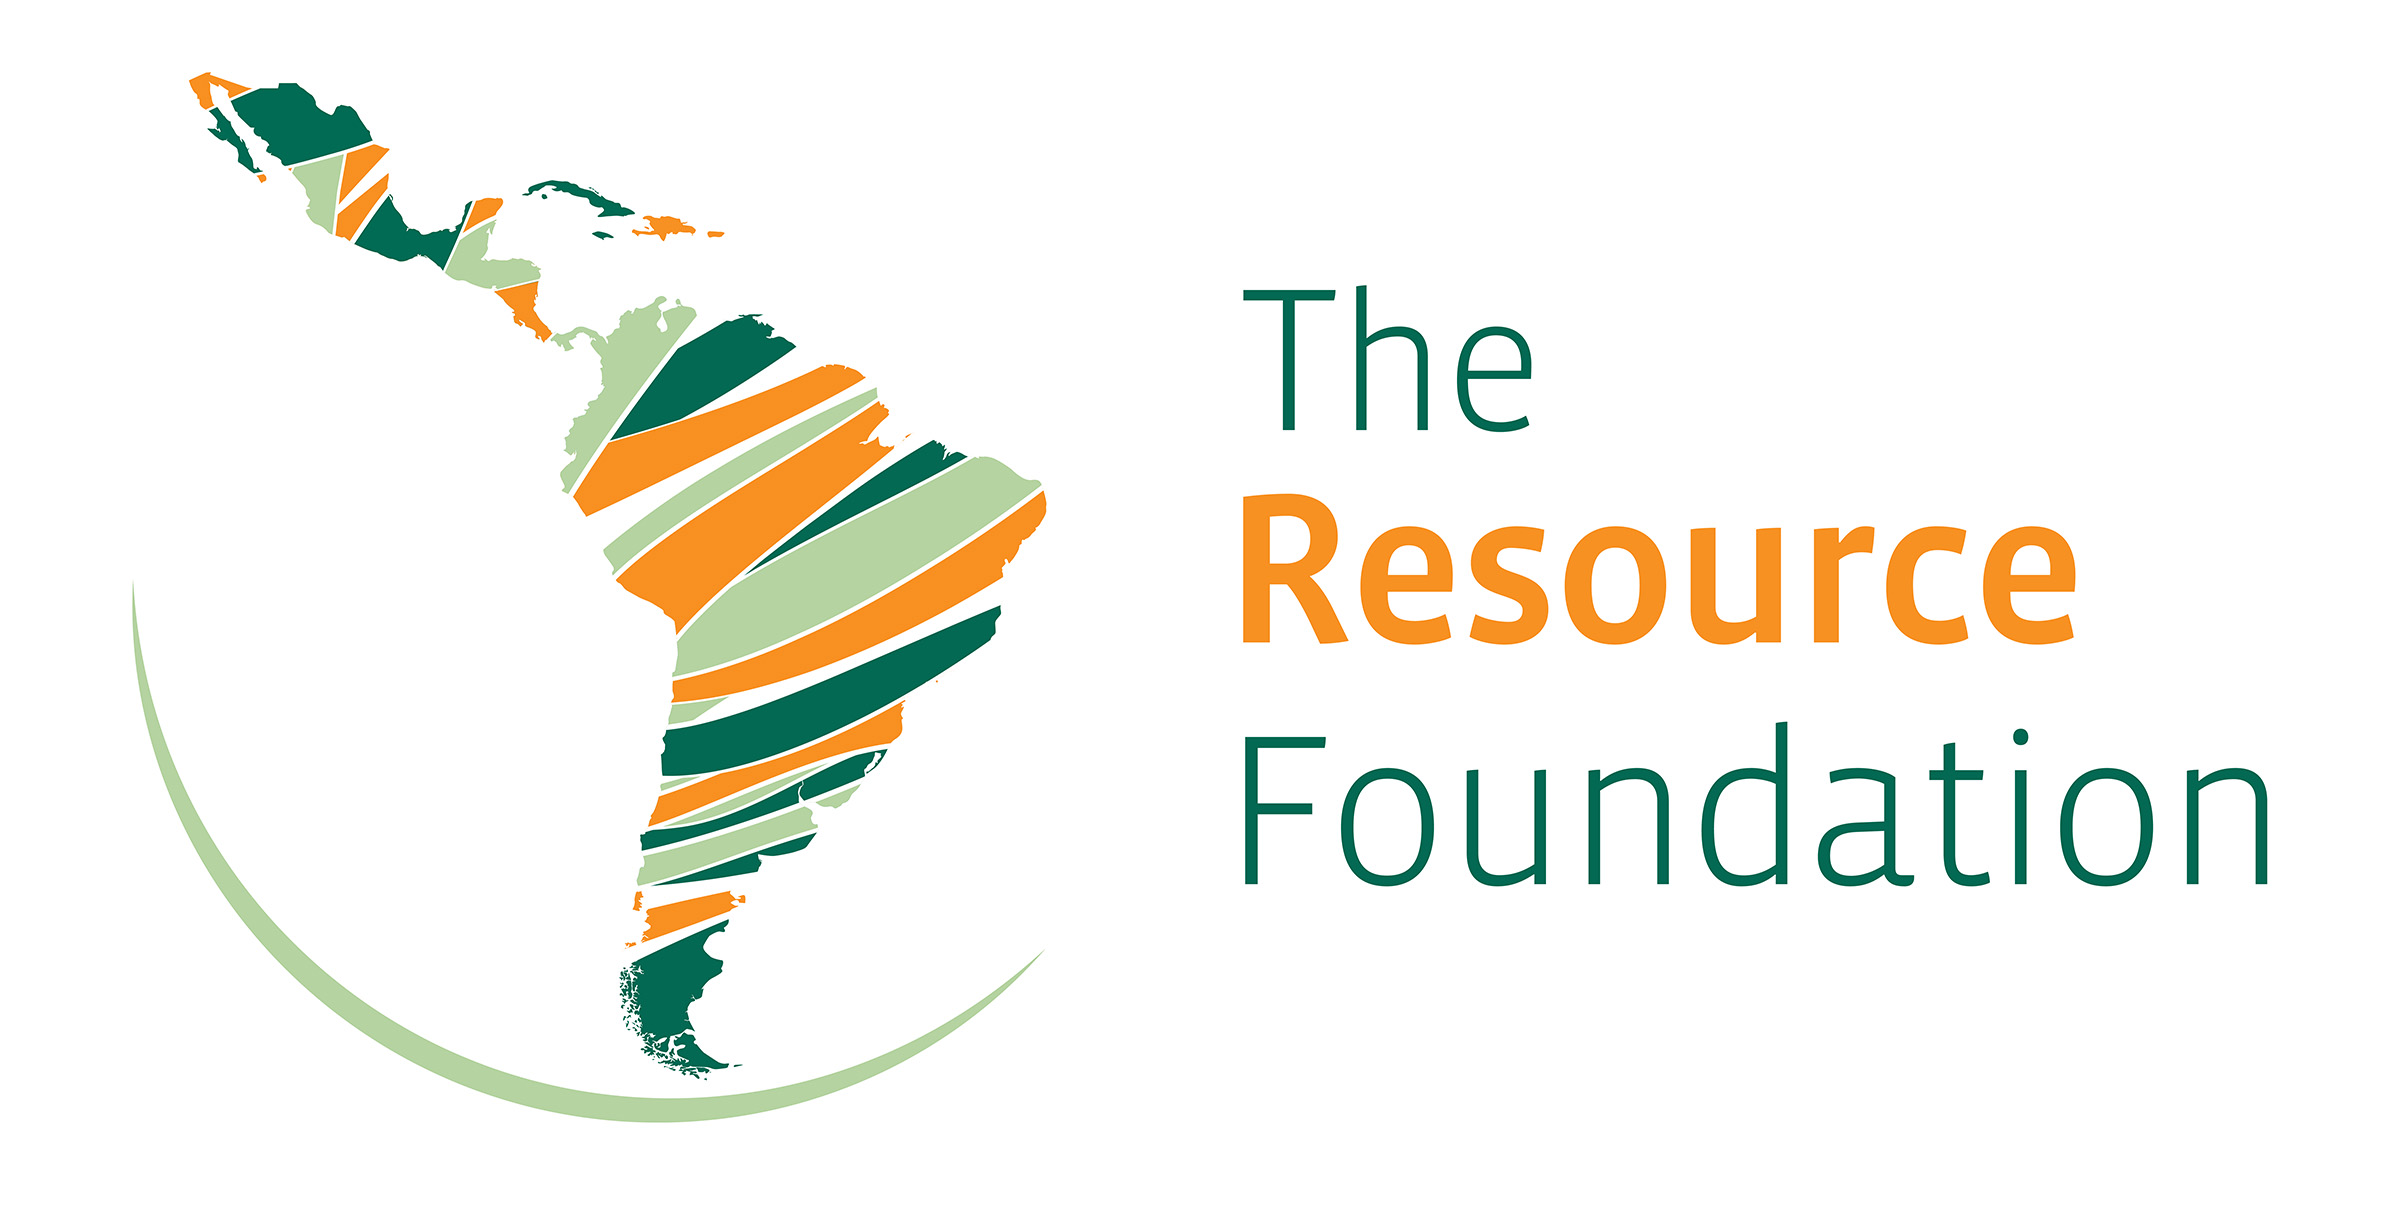 The Resource Foundation logo